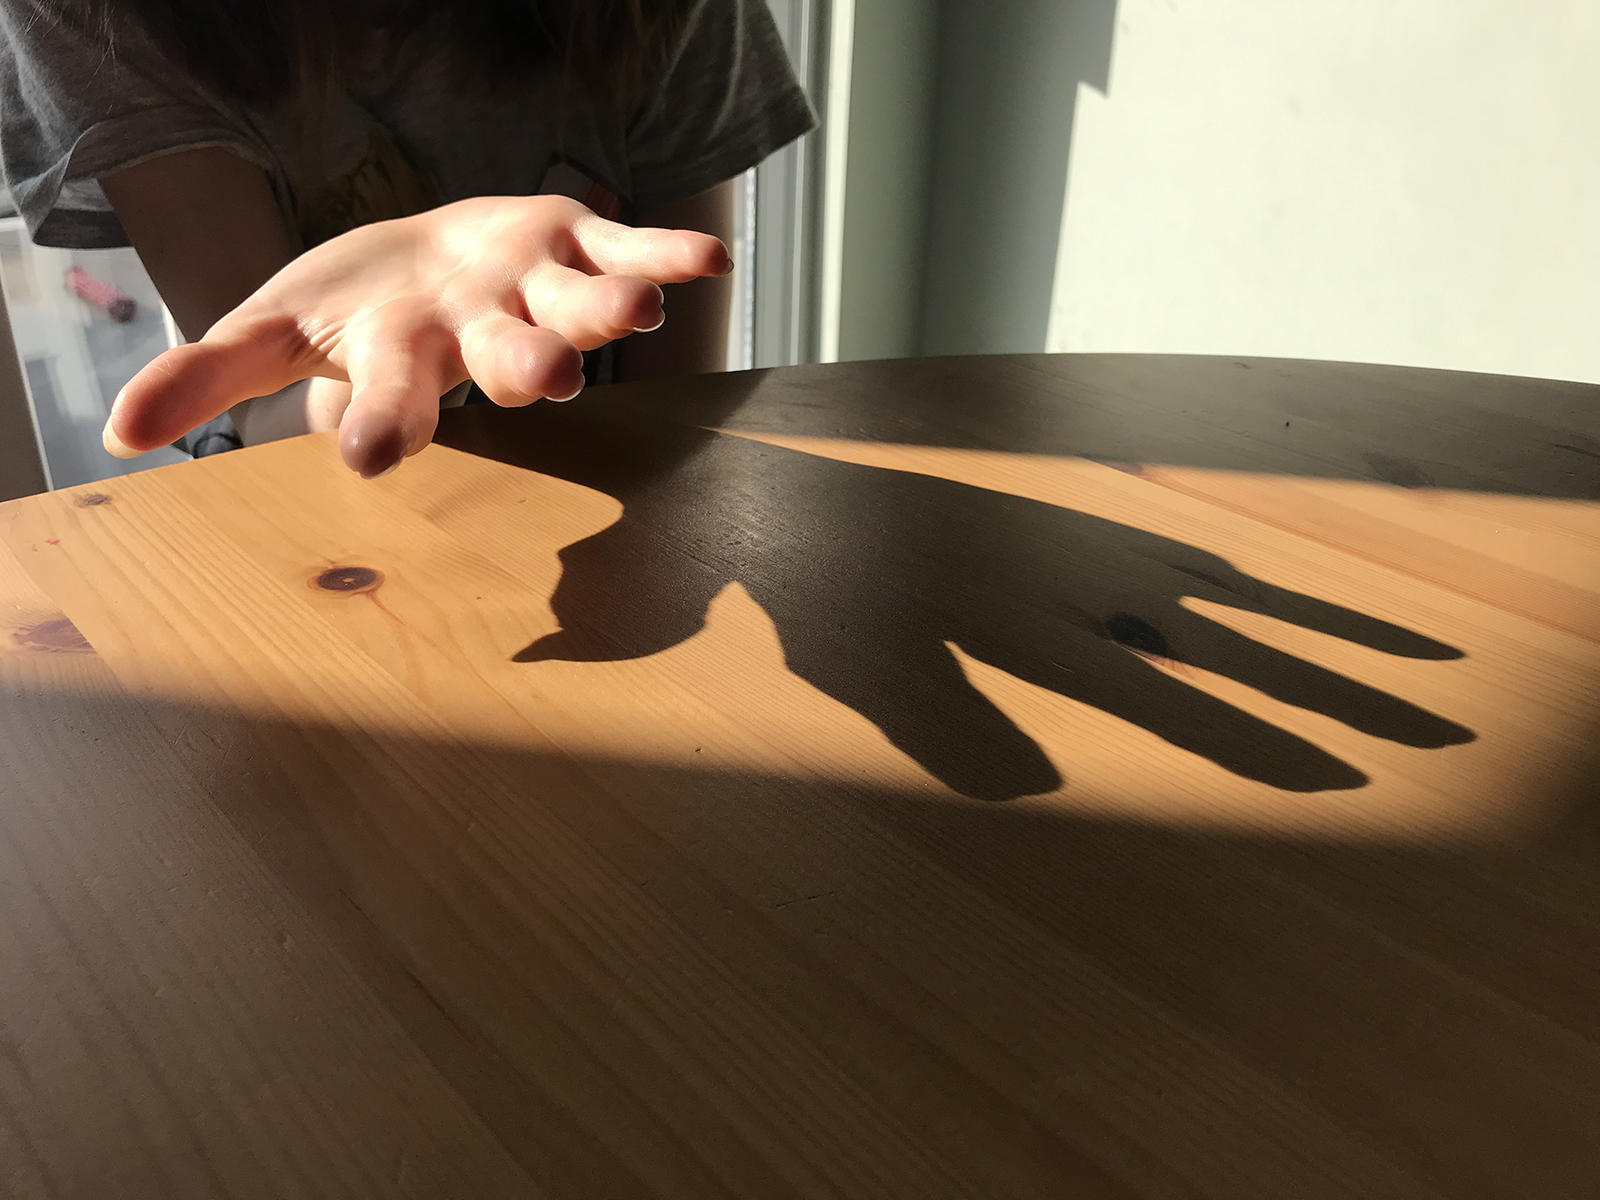 Hand shadow on table